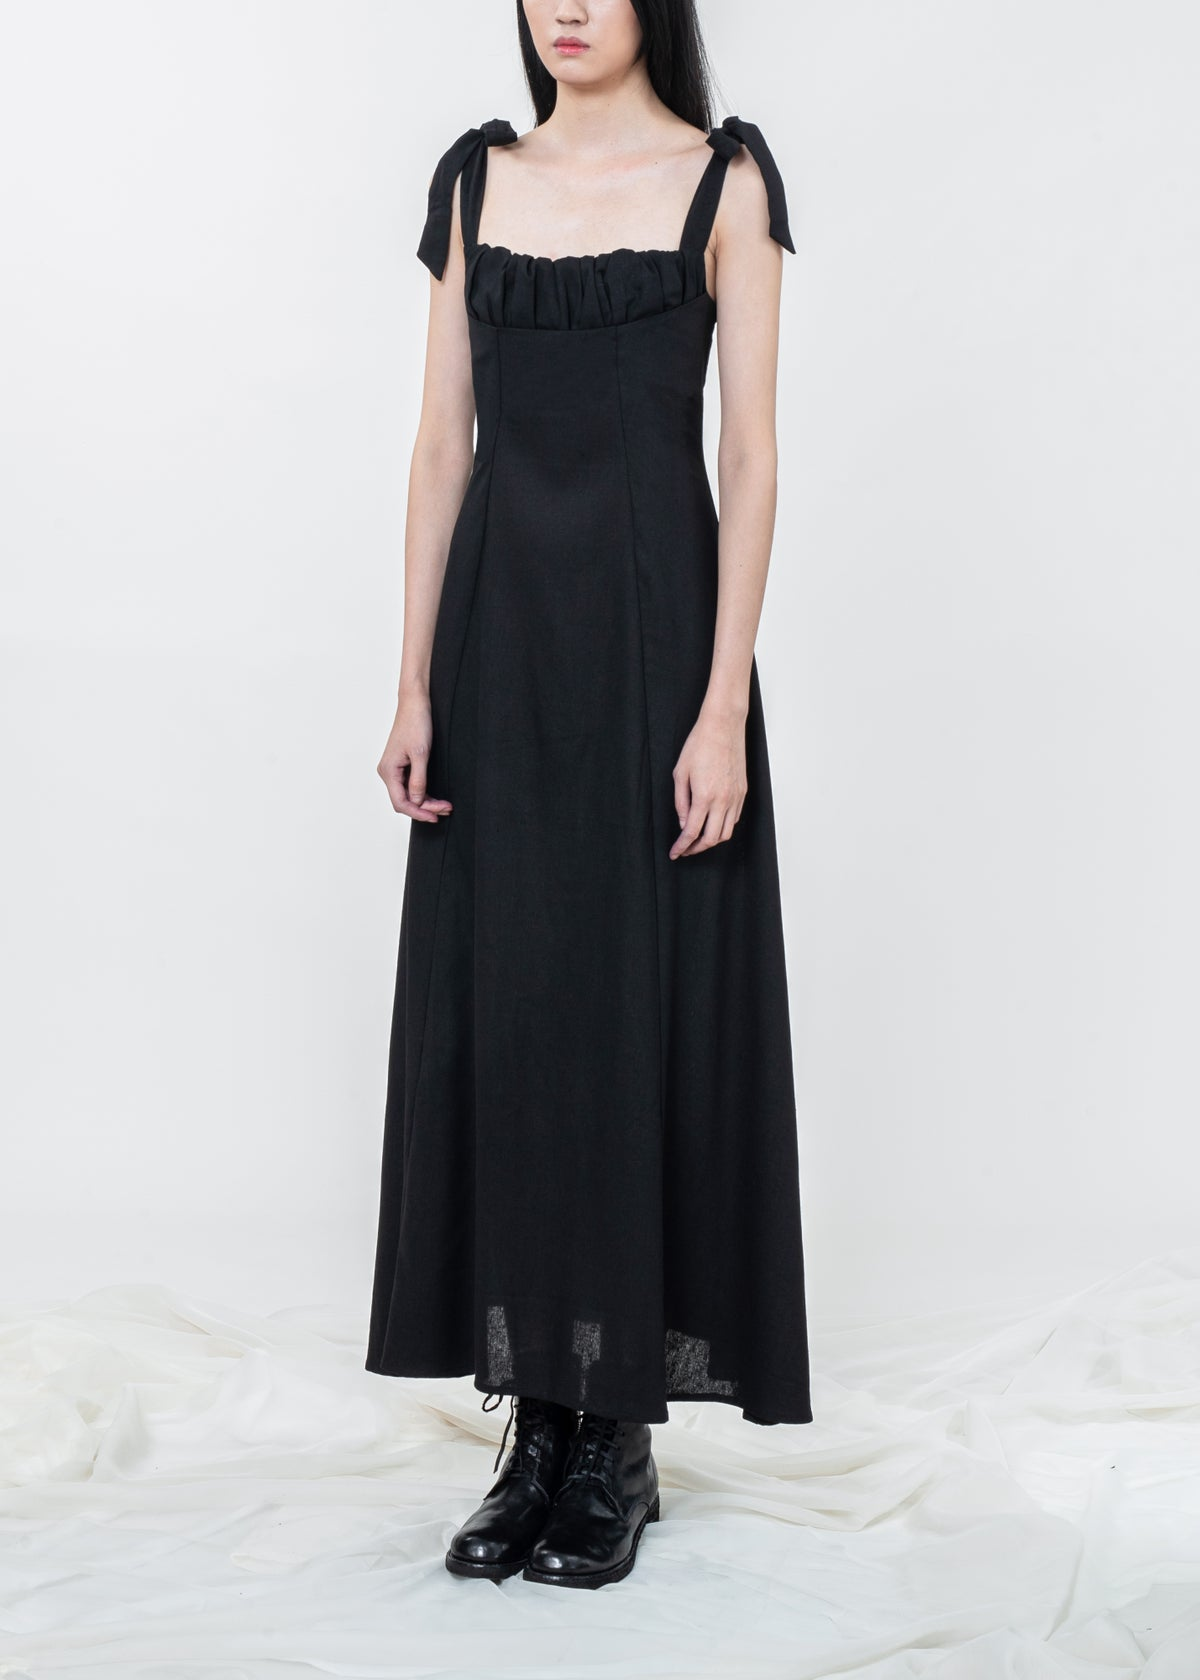 Image of Black Rose Dress With Ties